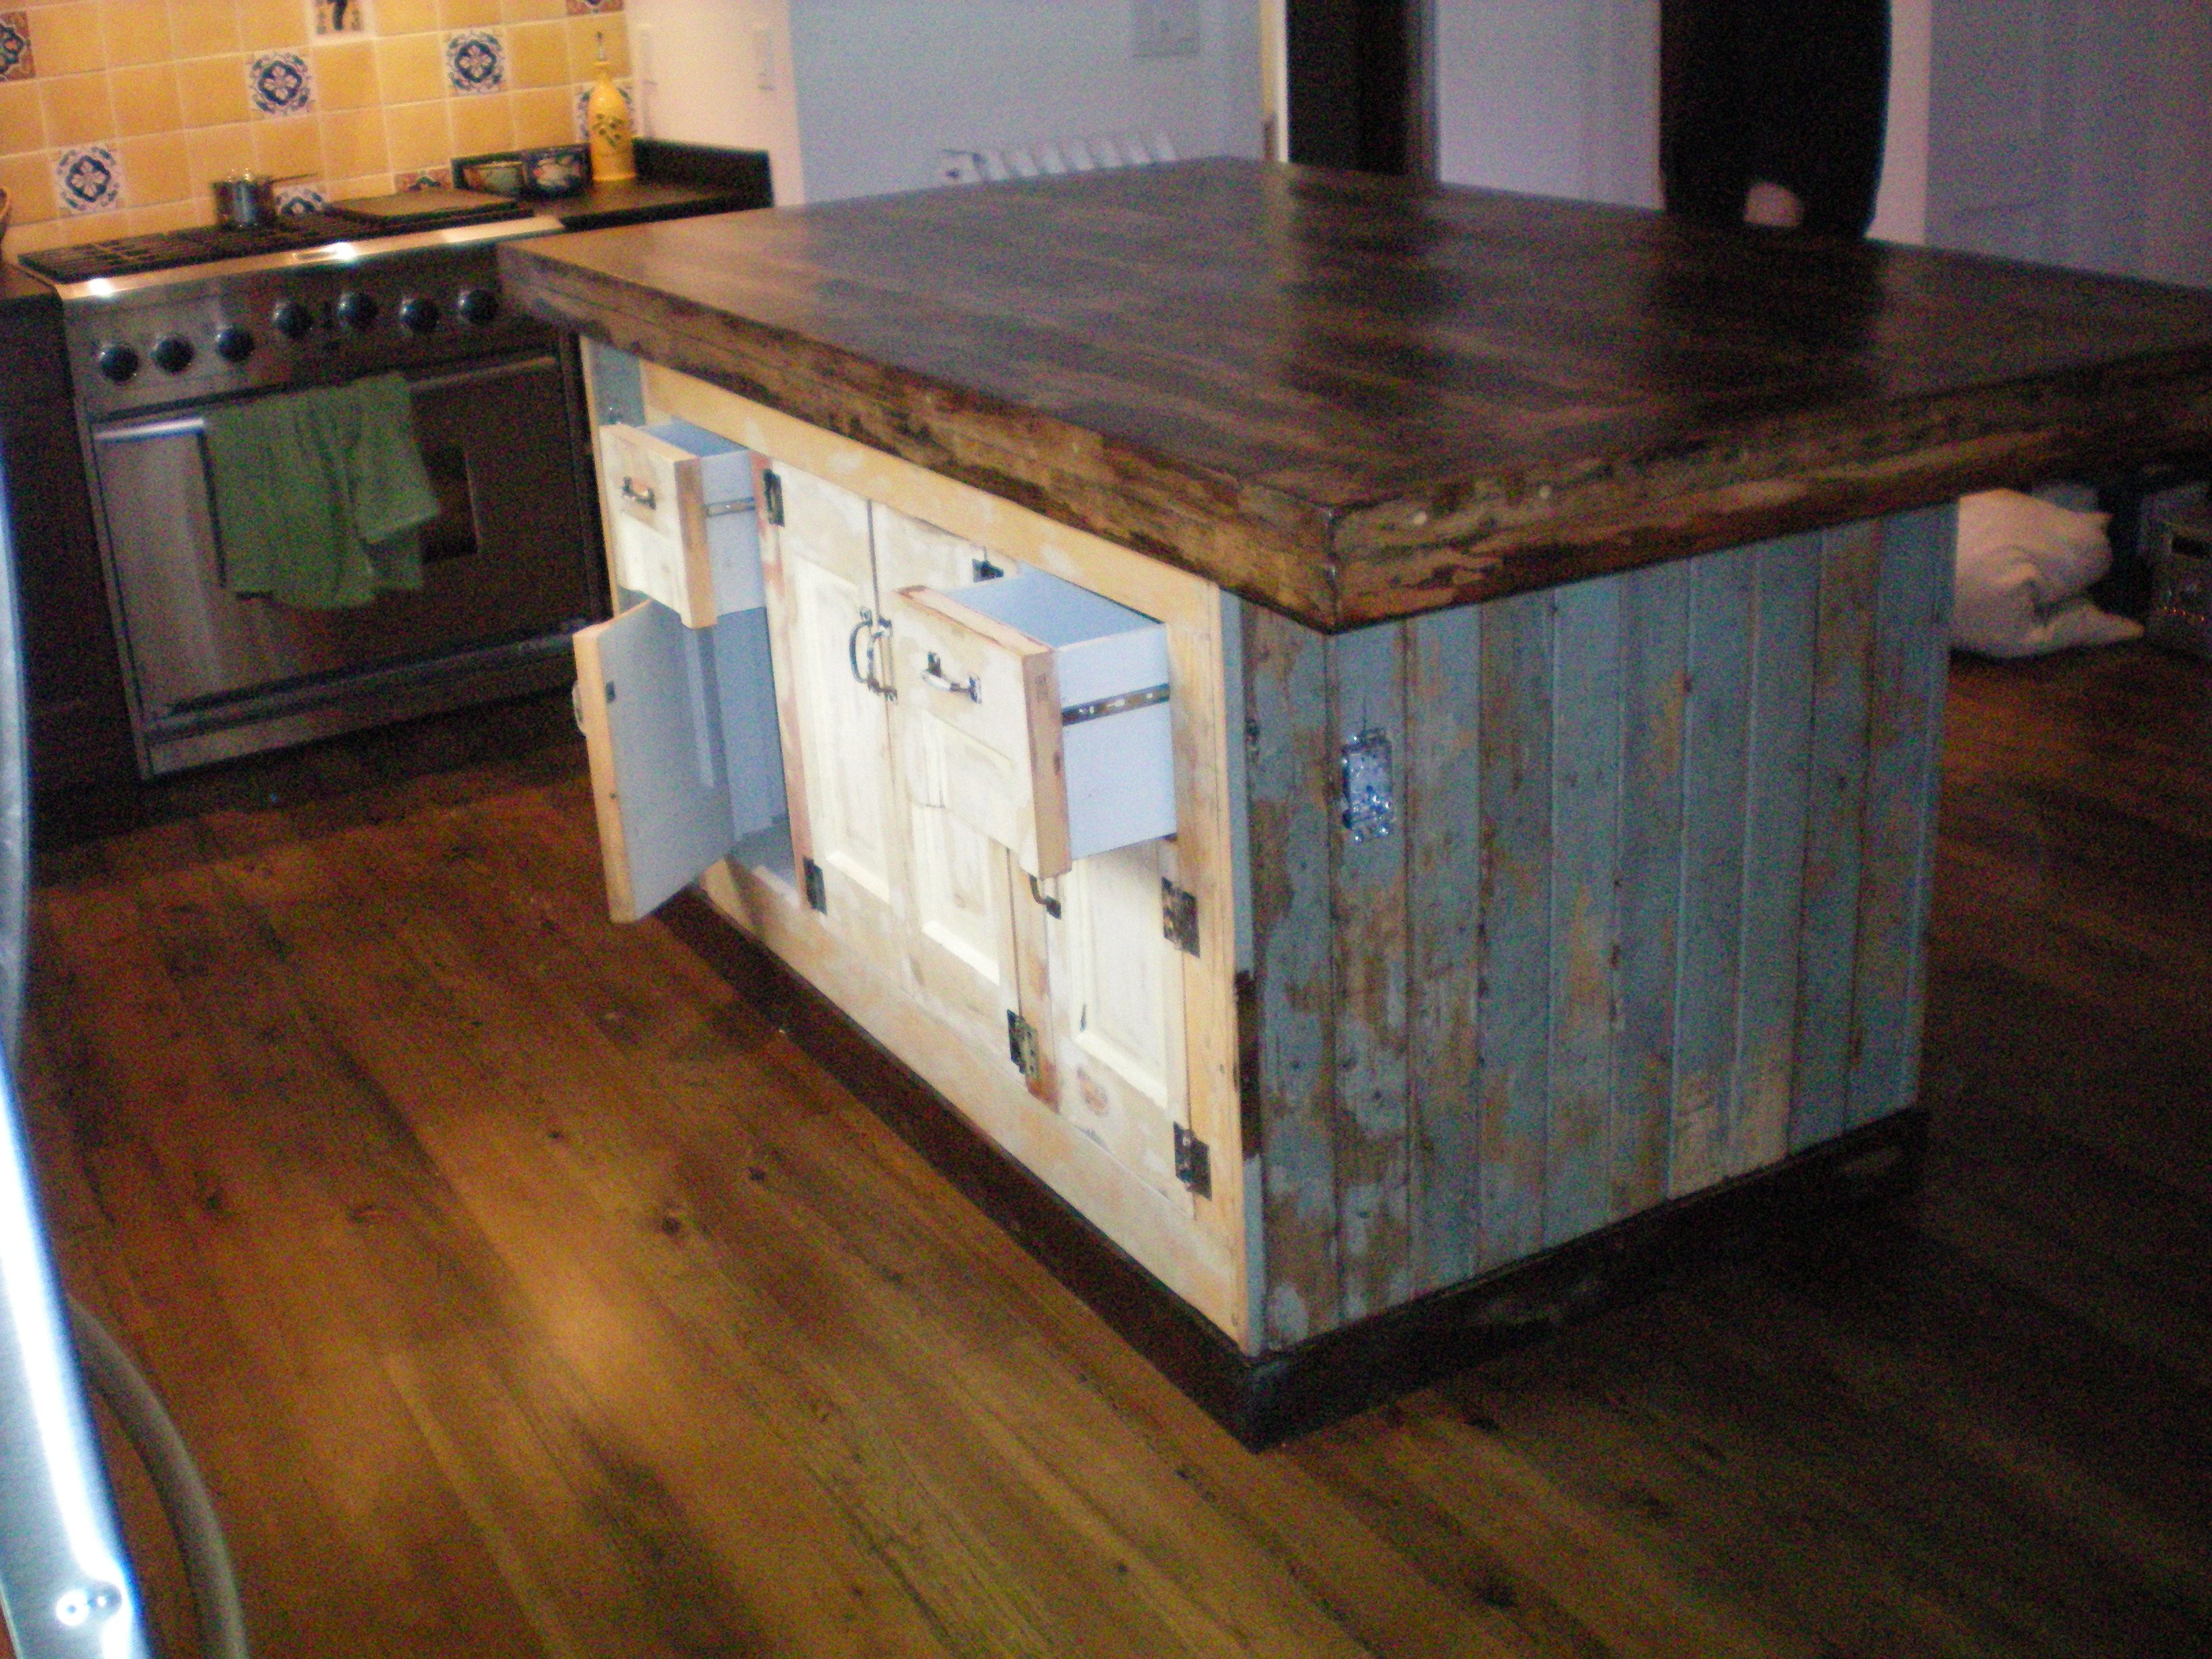 Forever Interiors Large Kitchen Island With Cabinets And Drawers Made Entirely From Reclaimed Wood Kitchen Island Wood Kitchen Island Kitchen Islands For Sale